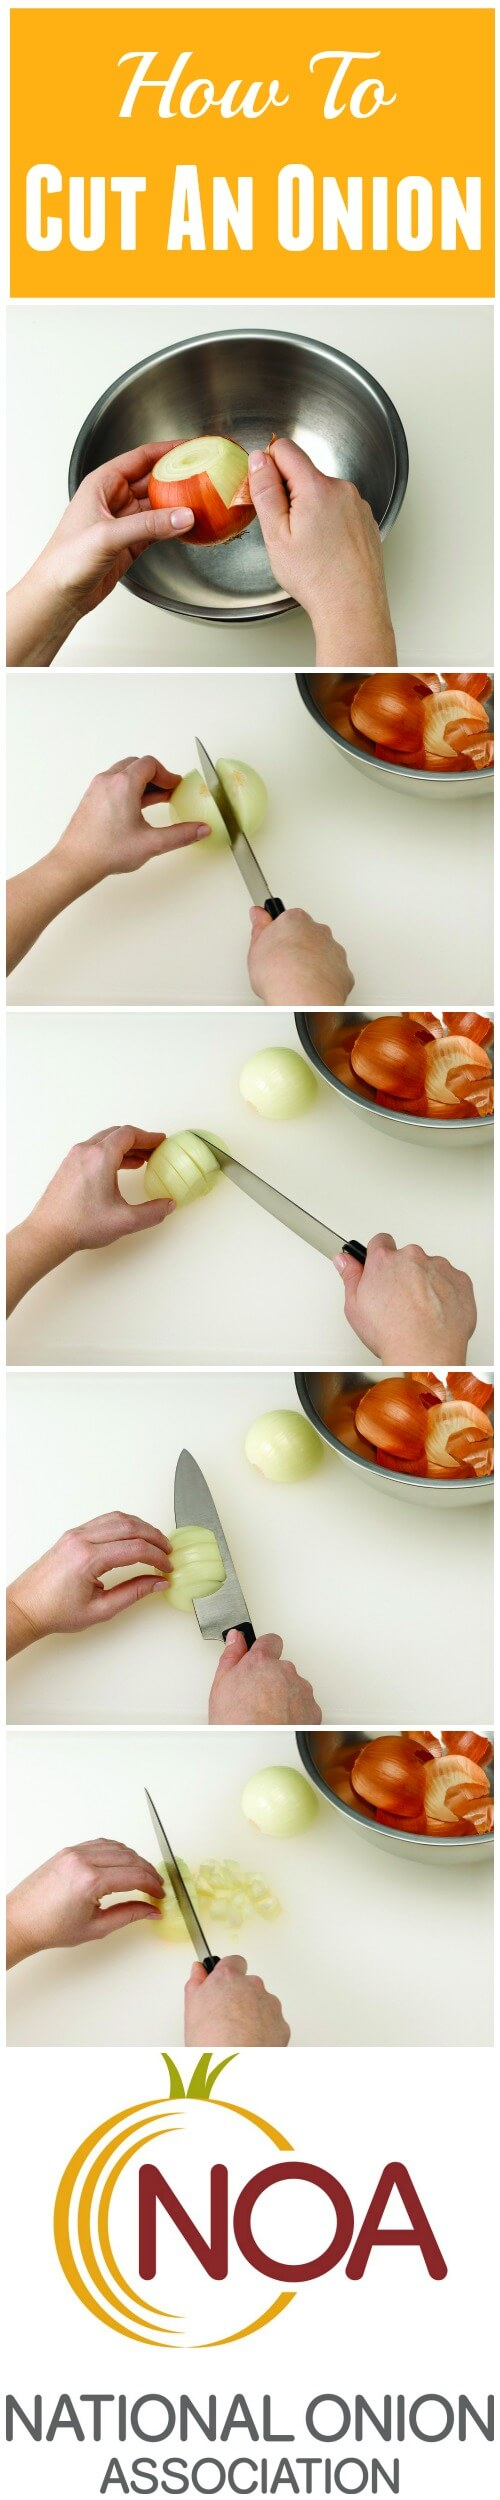 how-to-cut-an-onion